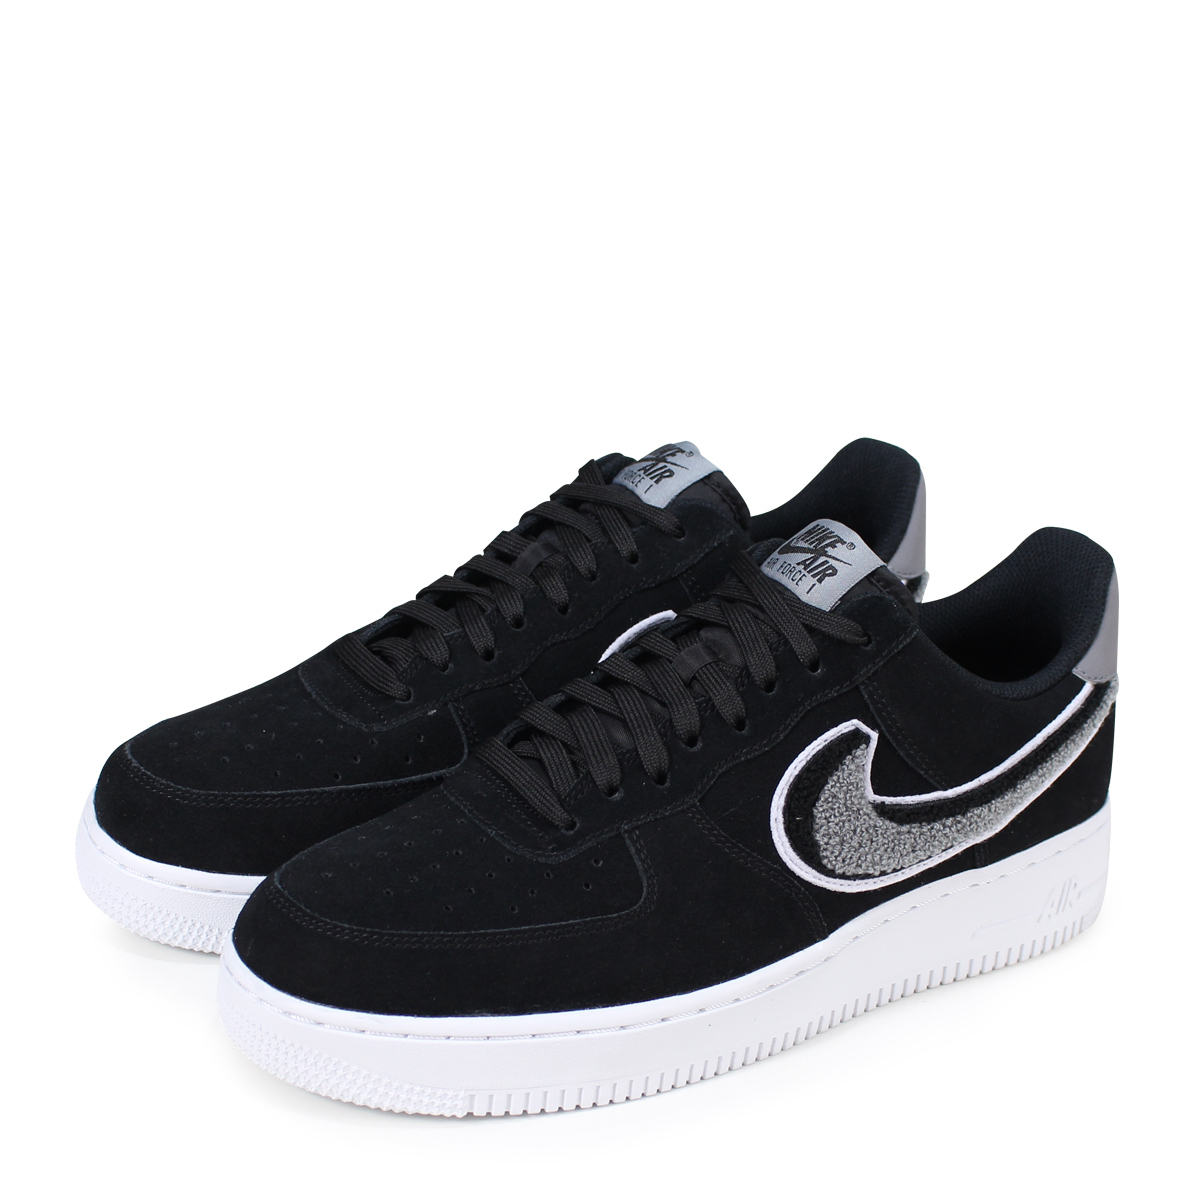 the best attitude 7ce5f 0236f NIKE AIR FORCE 1 07 LV8 Nike air force 1 sneakers men 823,511-014 black   load planned Shinnyu load in reservation product 6 28 containing   186